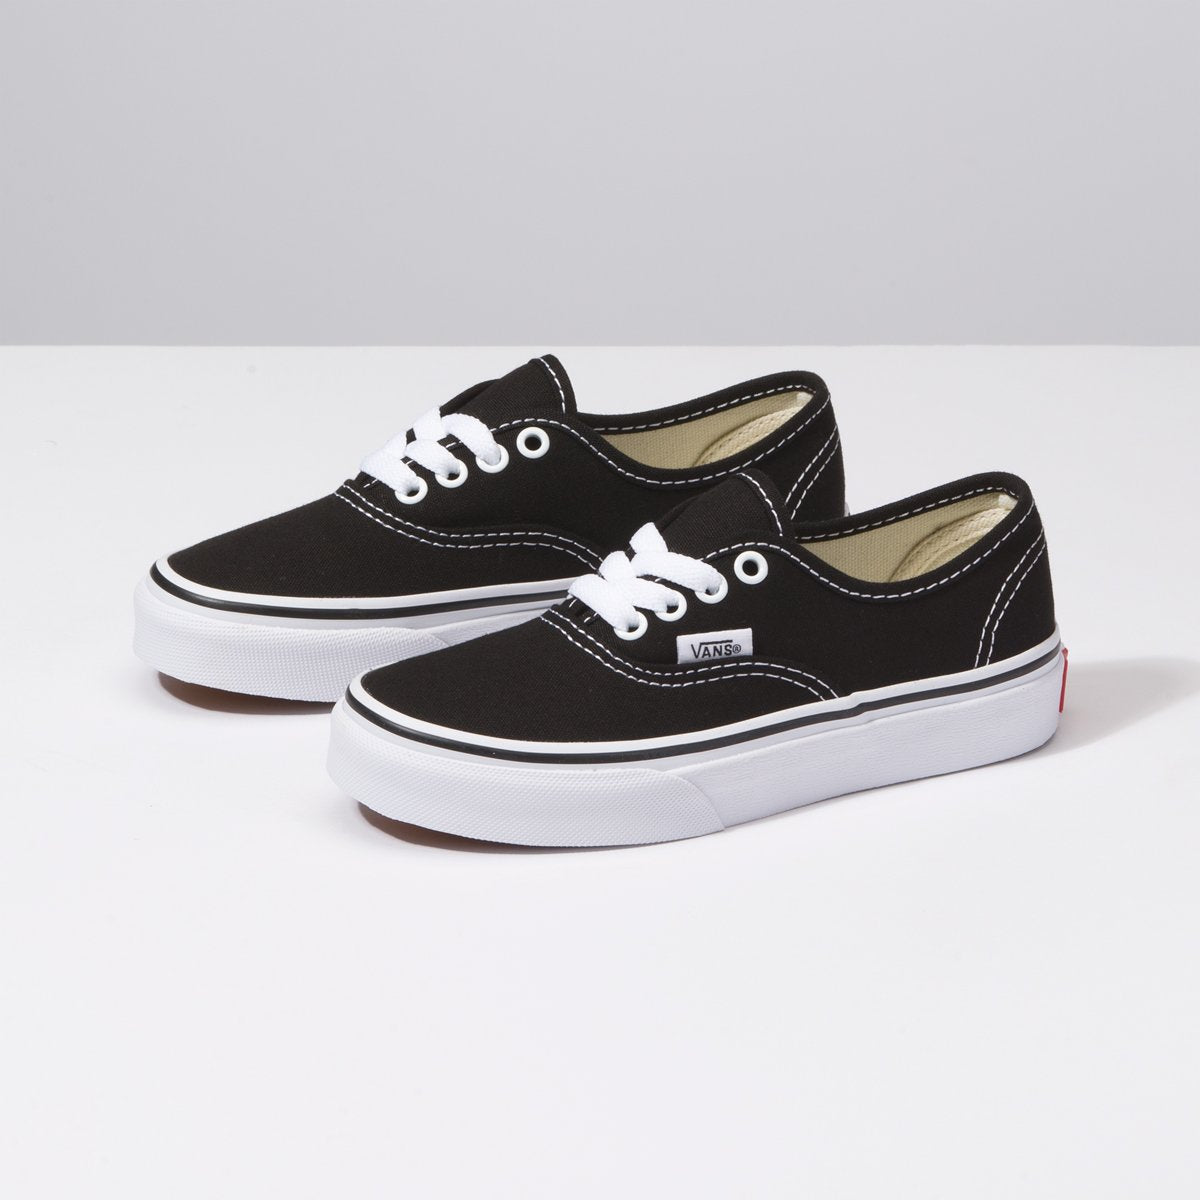 Zapatillas Vans de Niños Authentic - Black/True White - Vans